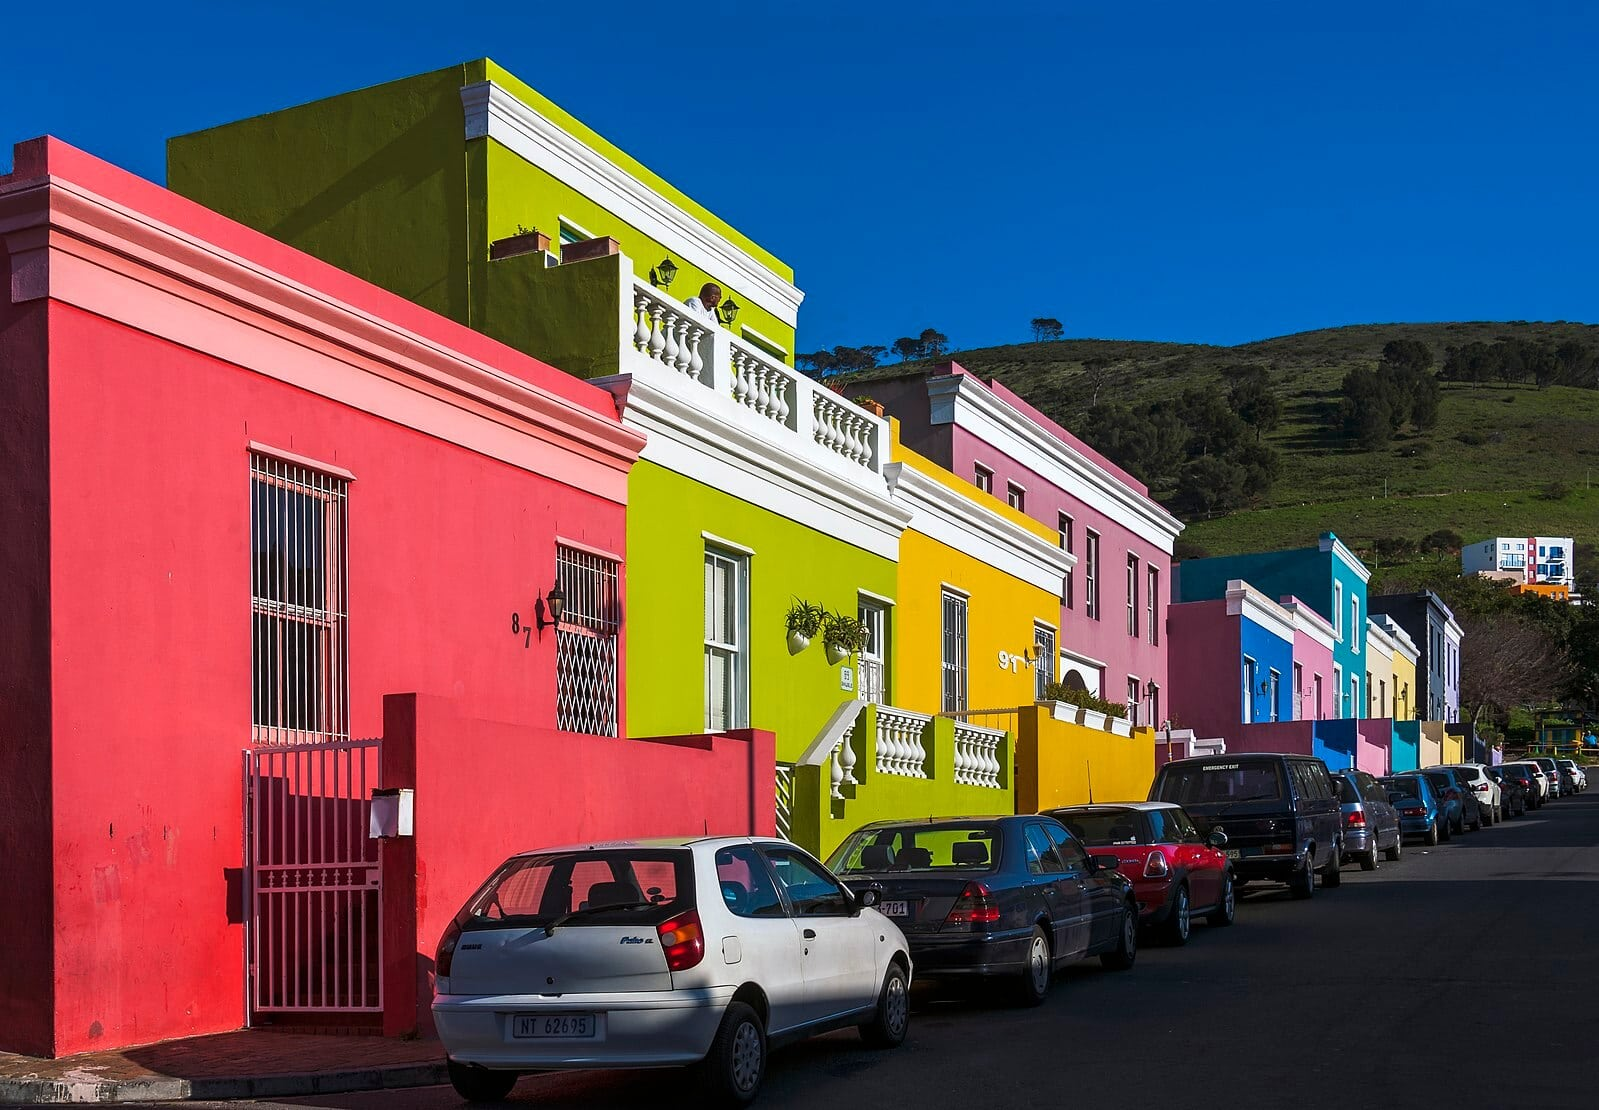 Landmarks in South Africa - Bo Kaap Cape Town